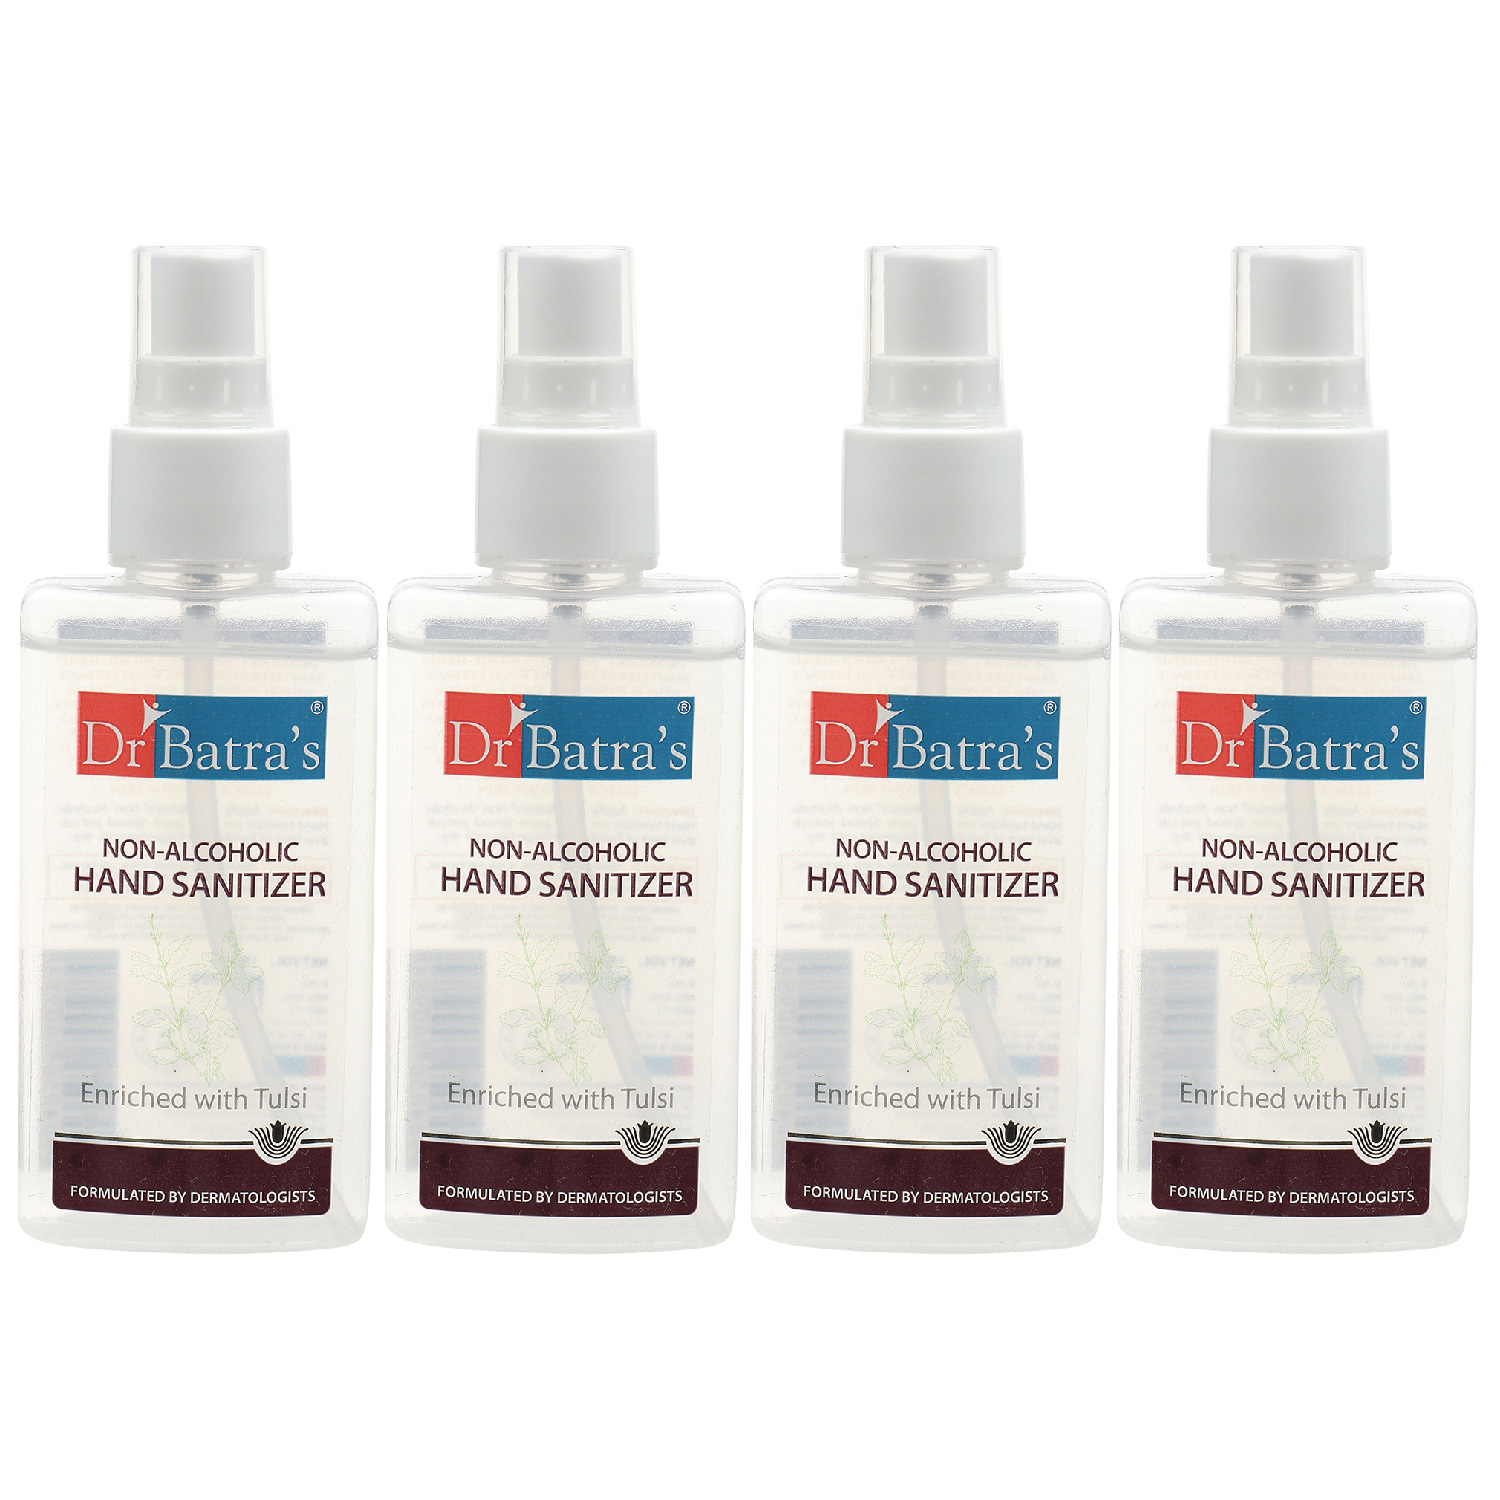 Dr Batra's | Dr Batra's Non Alcoholic Hand Sanitizer|Enriched With Tulsi|Kills 99.9% Germs|Stay Home, Stay Safe - 100 ml (Pack of 4)